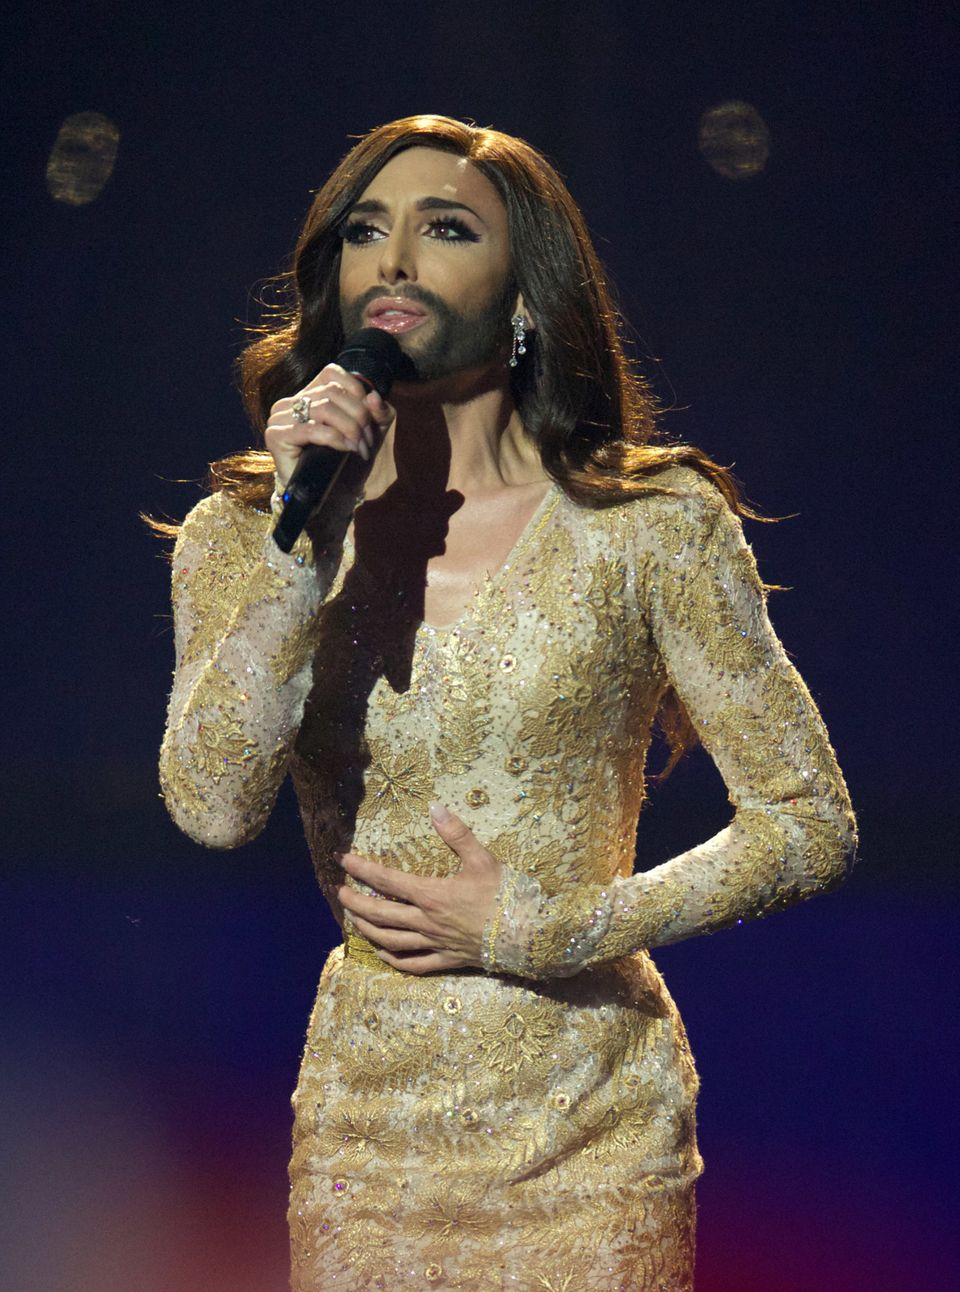 COPENHAGEN, DENMARK - MAY 08: Conchita Wurst of Austria performs on stage during the second Semi Final of the Eurovision Song